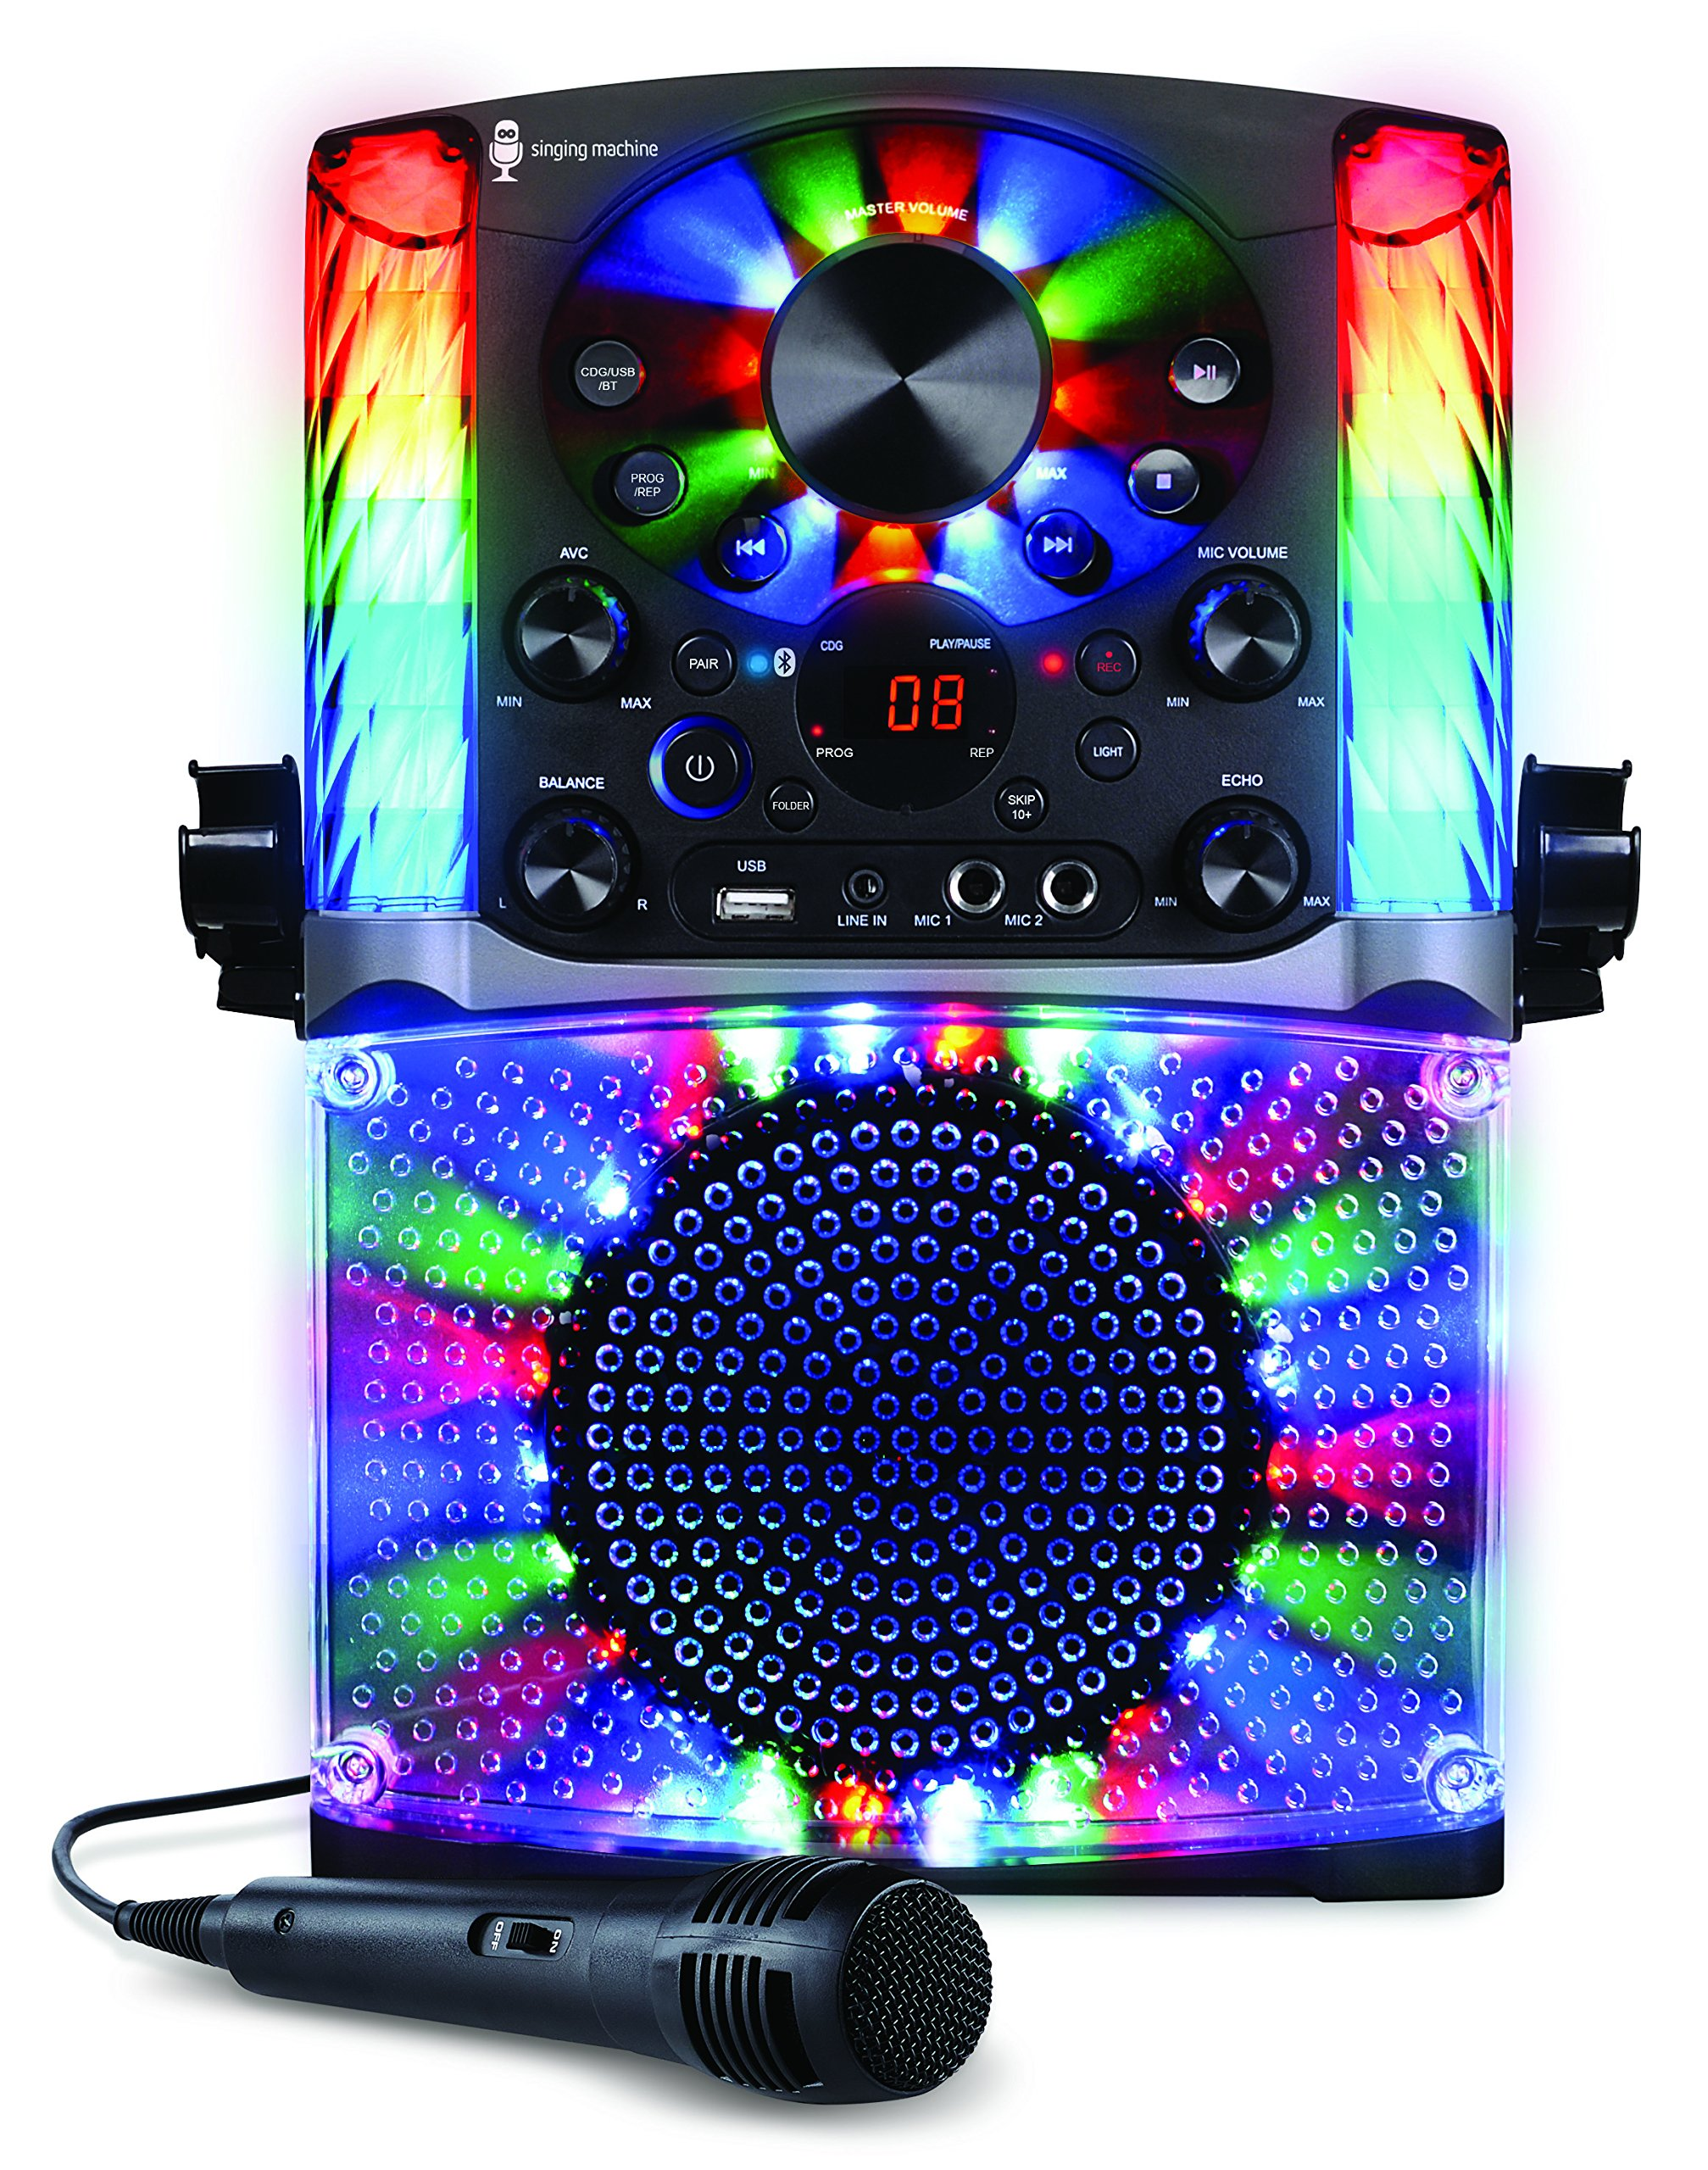 Singing Machine SML625BTBK Bluetooth CD+G Karaoke System Black by Singing Machine (Image #2)